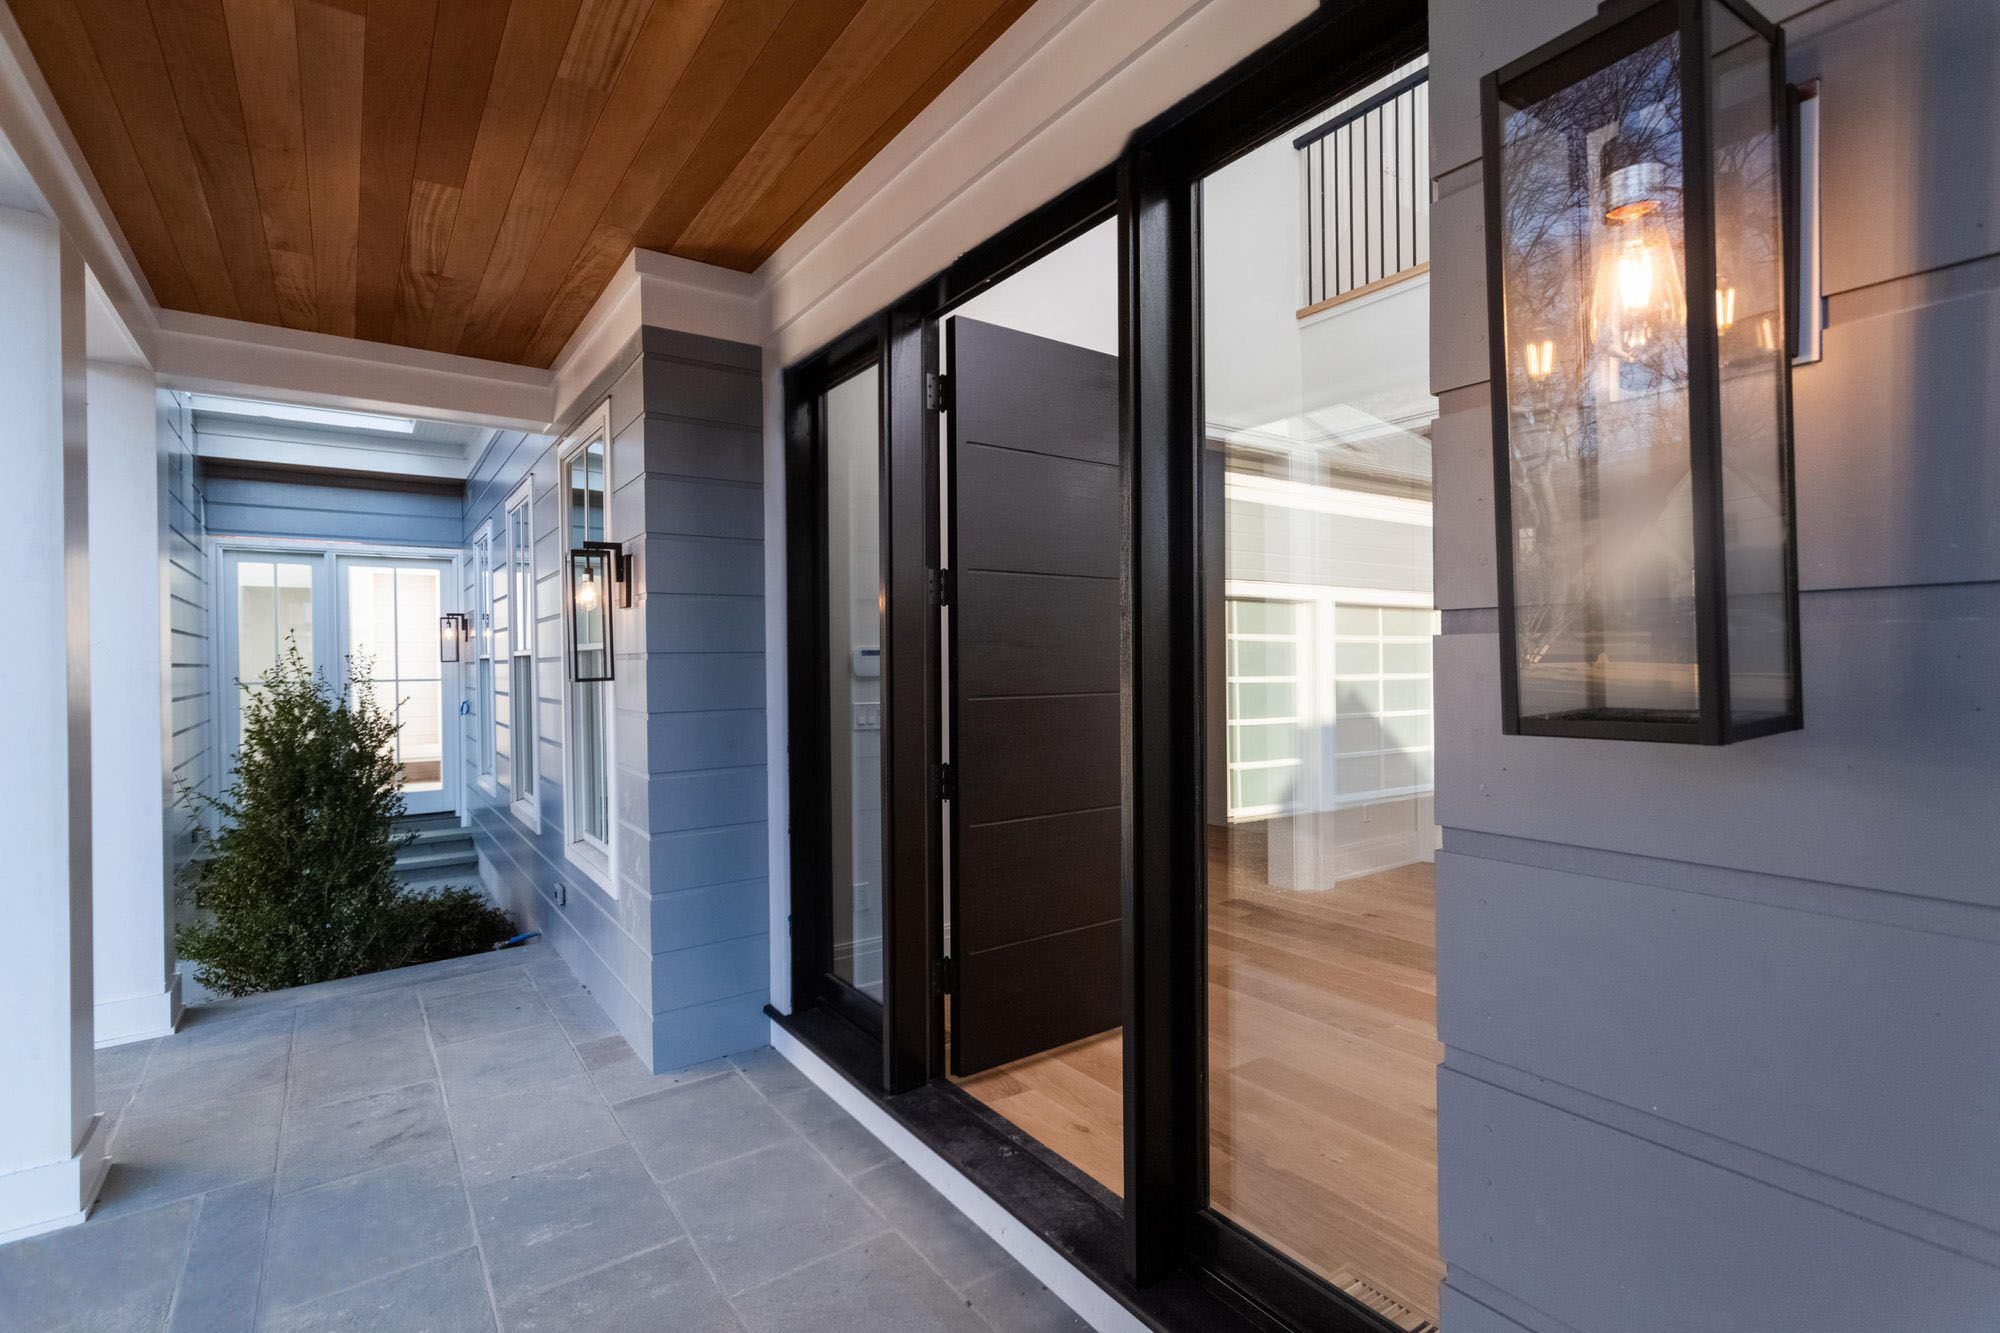 Modern black front door on a custom home with blue lap siding, a covered front porch and wood panel ceiling.